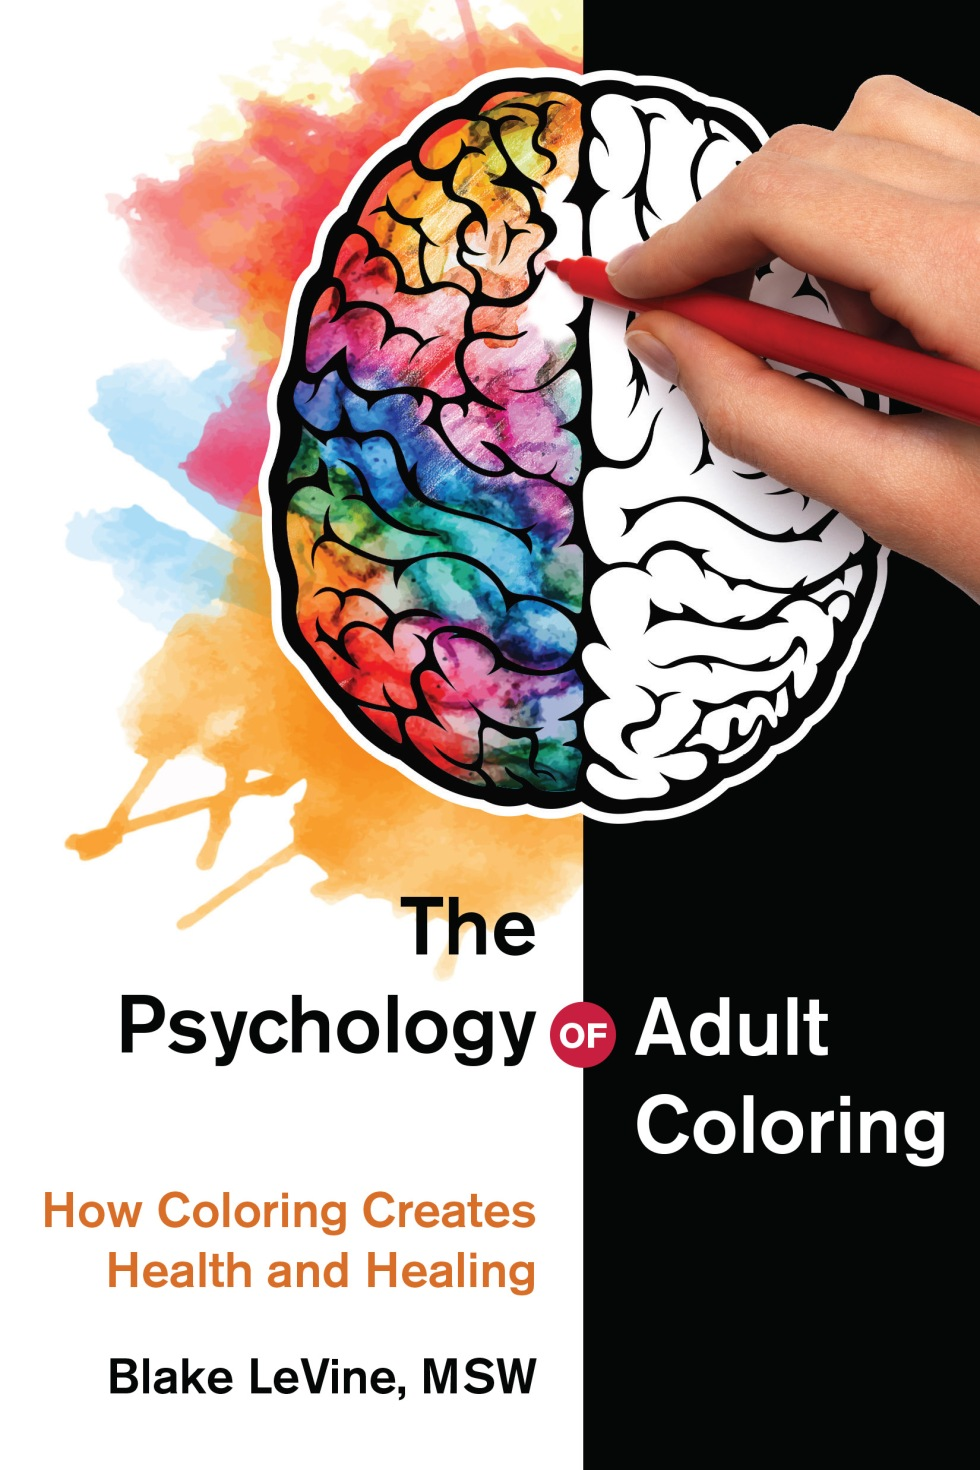 Psychology of Adult Coloring, The